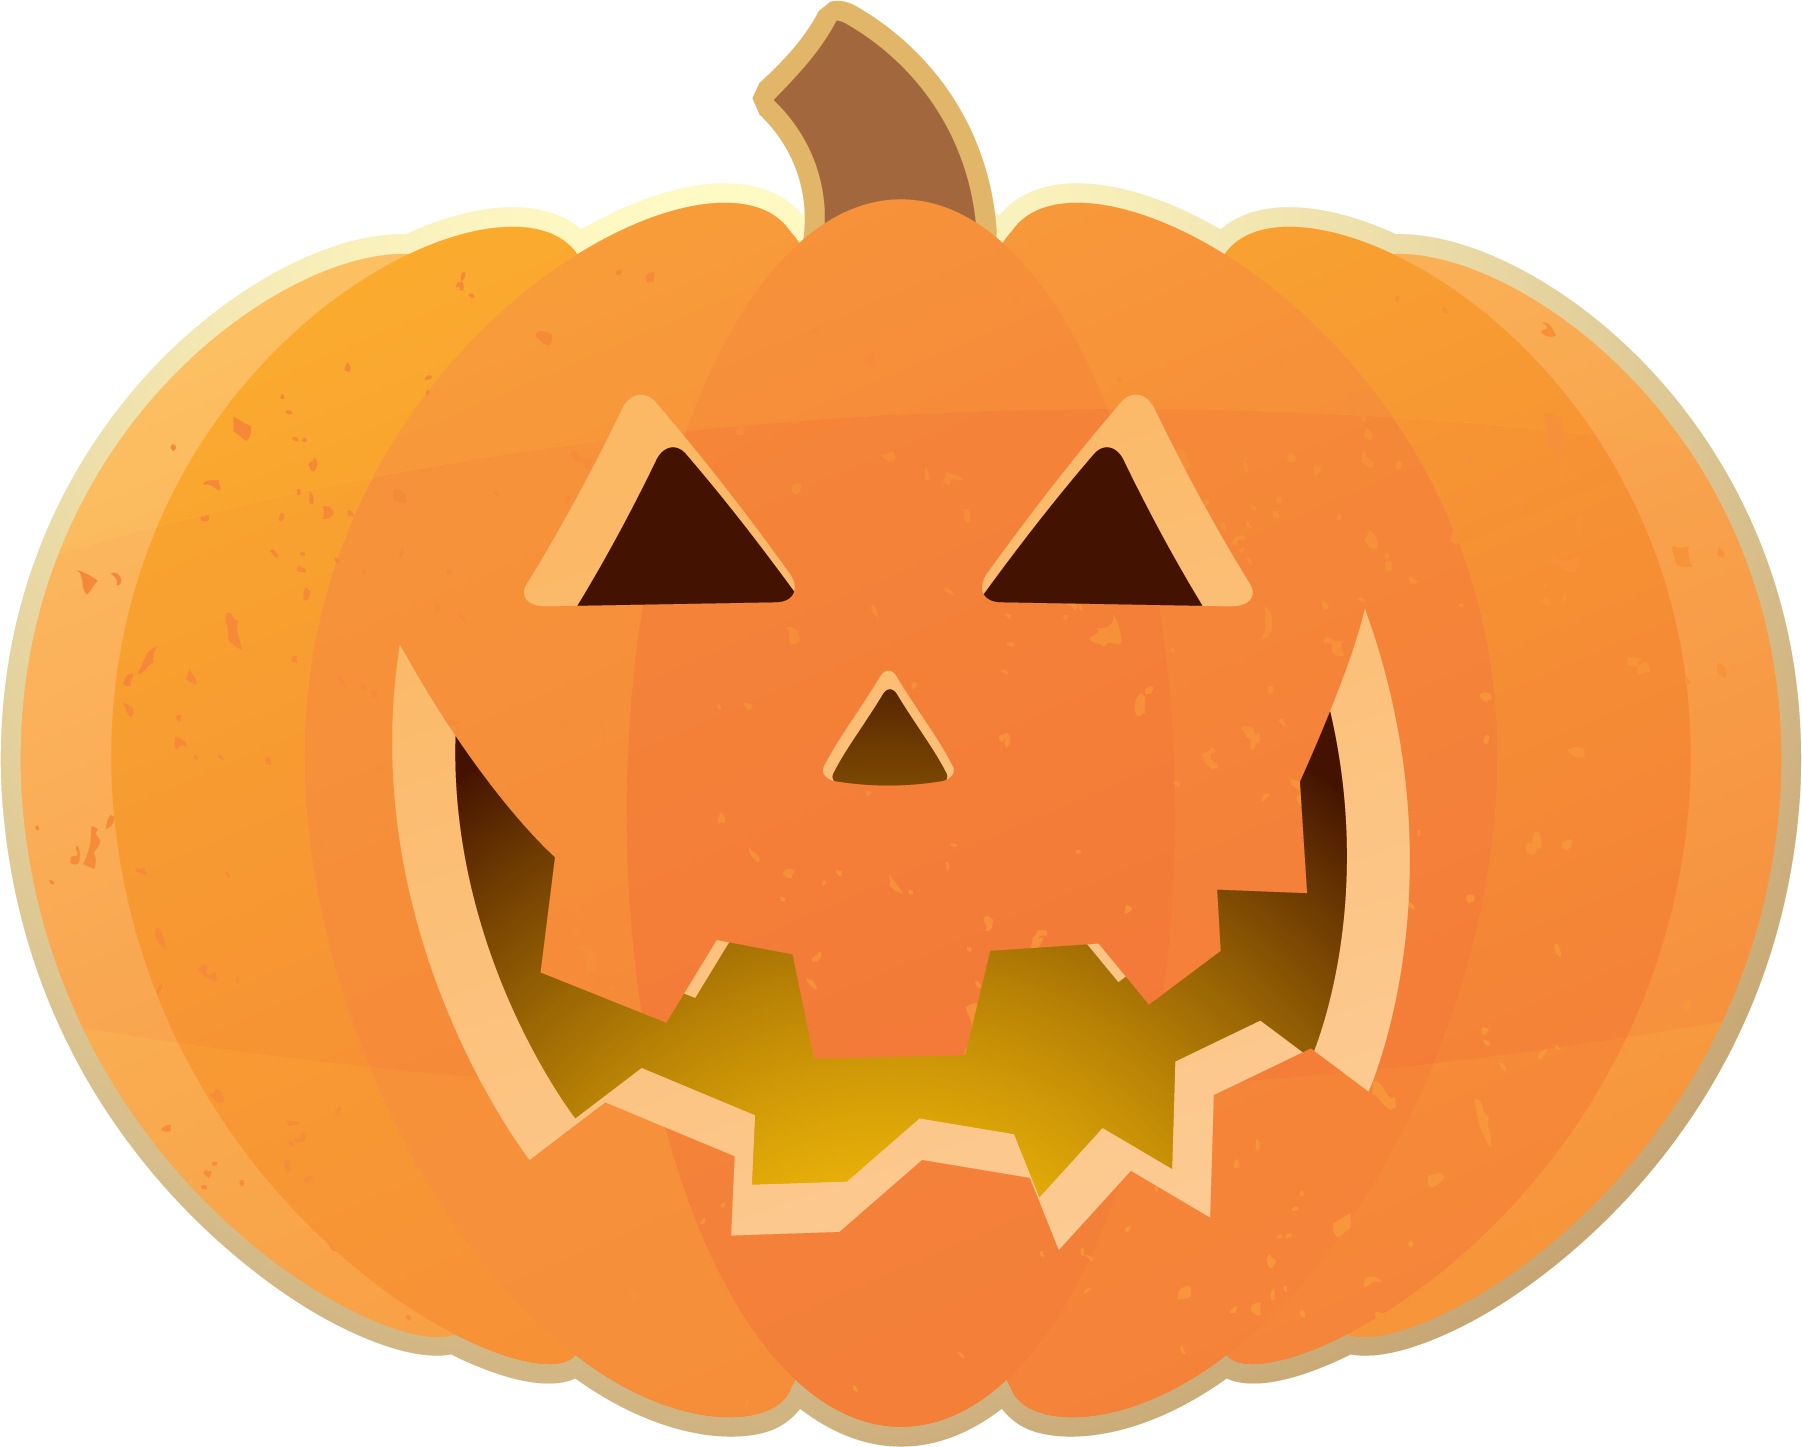 Cute pumpkin carving clipart. Free at getdrawings com